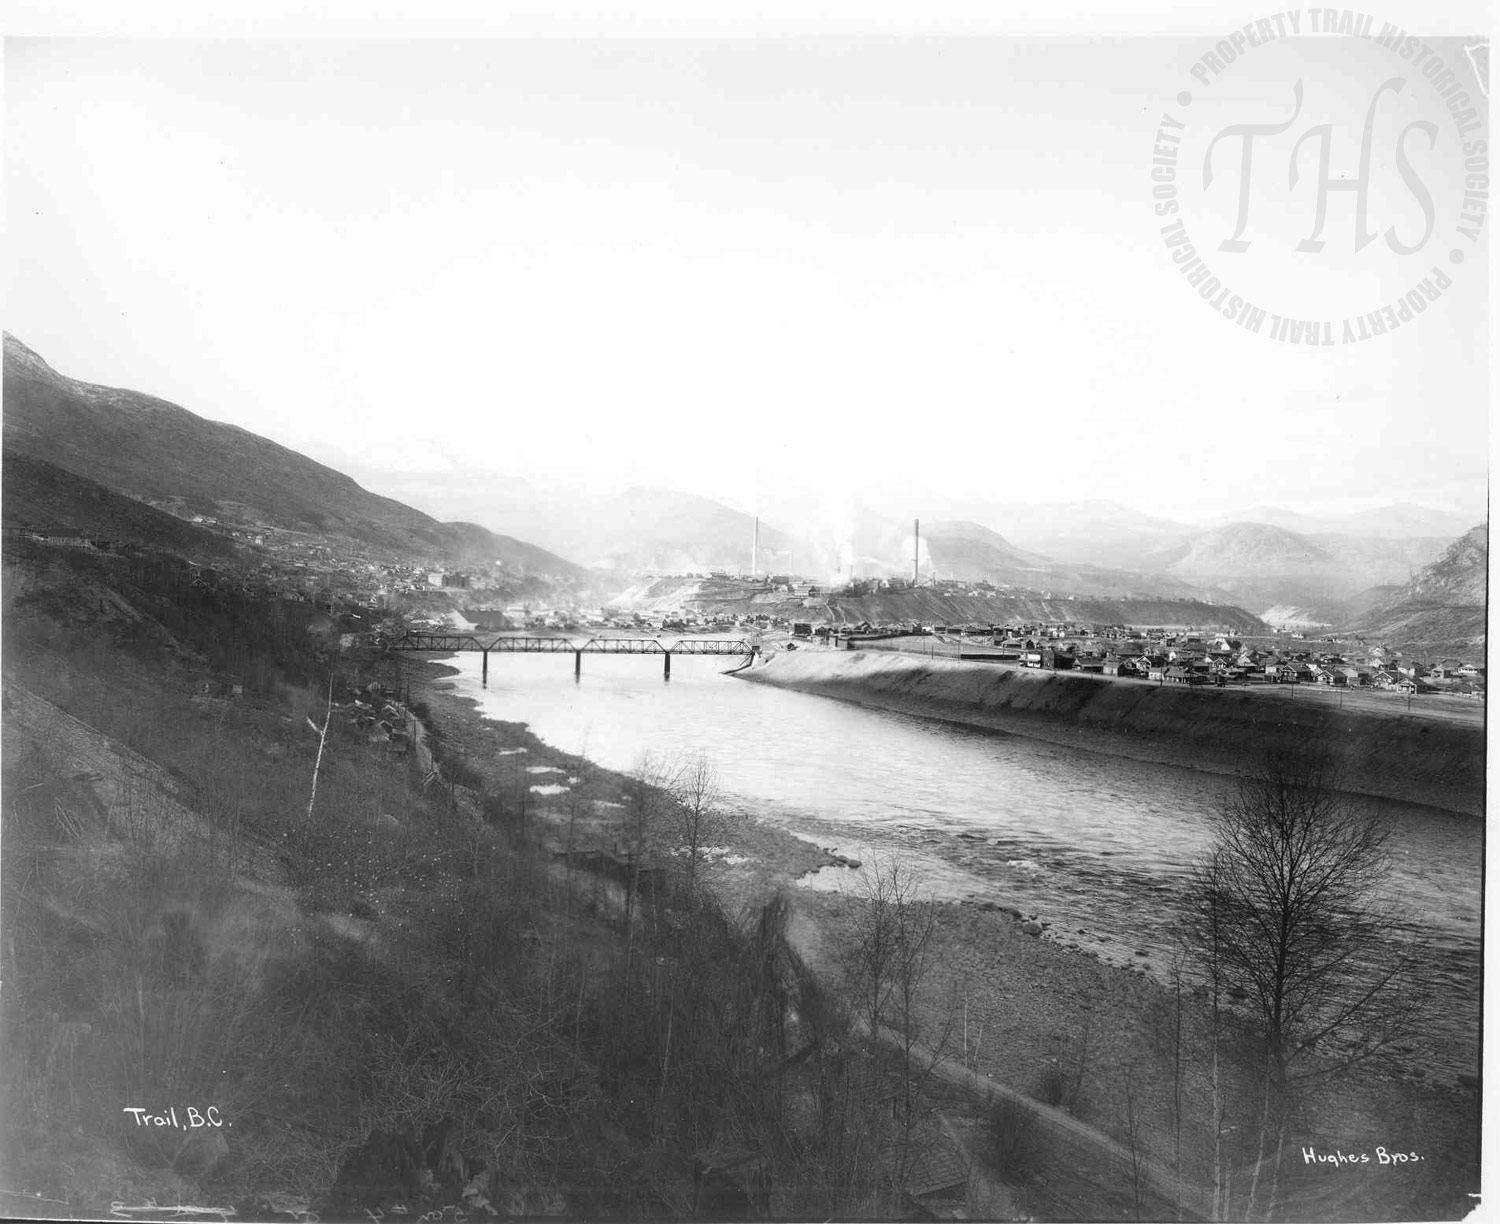 Columbia River, Old Bridge and Smelter from Casino (Hughes) - 1930